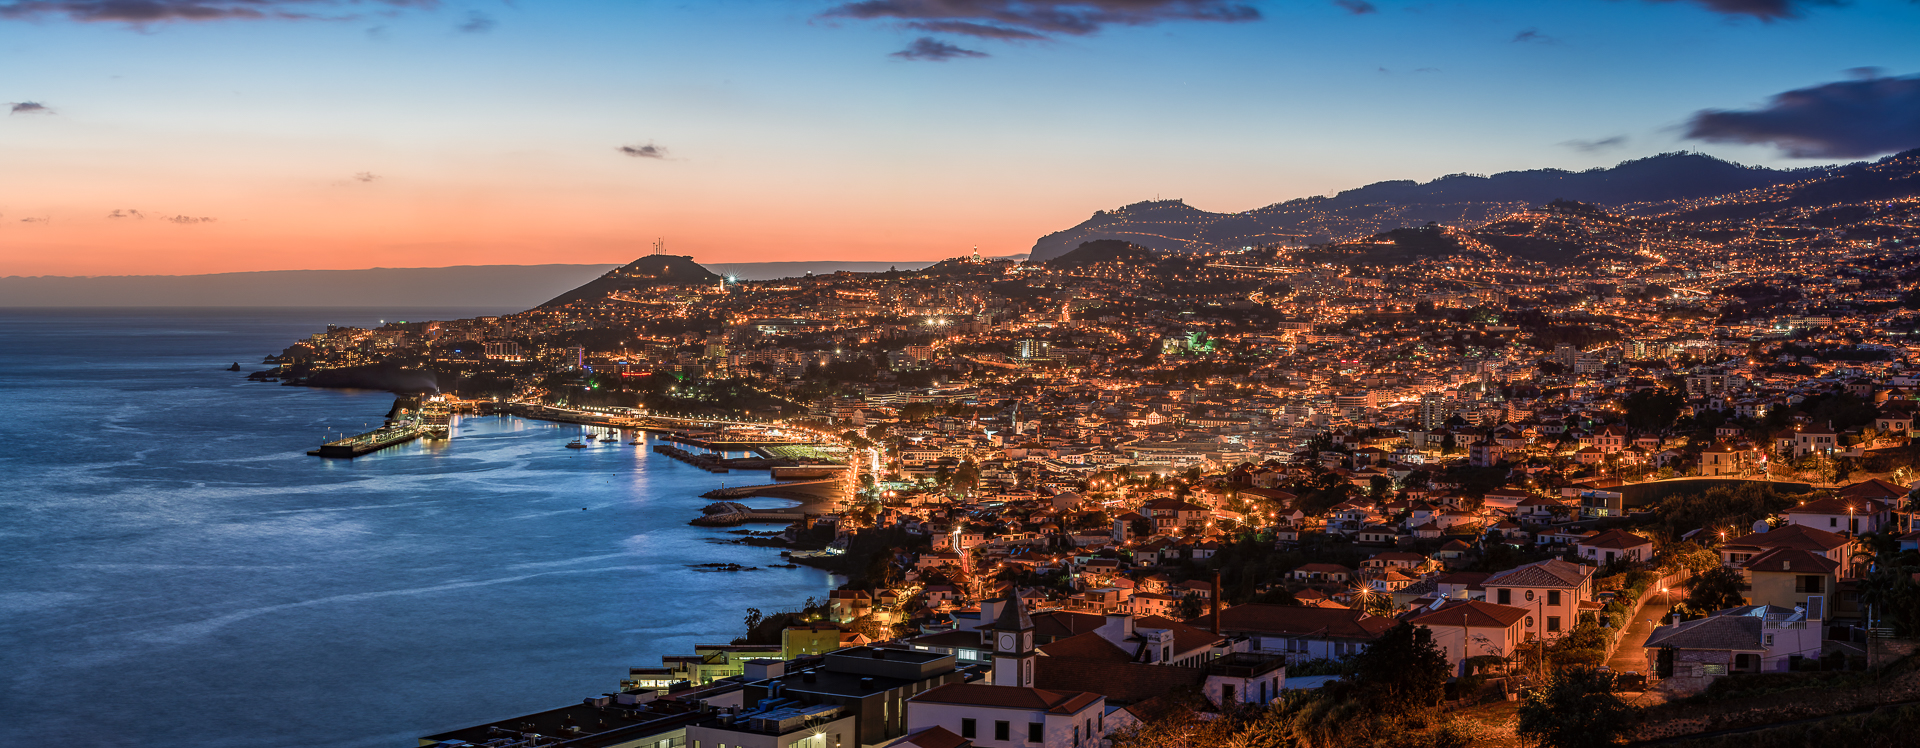 Night View Hd Wallpaper Madeira Island 030mm Photography